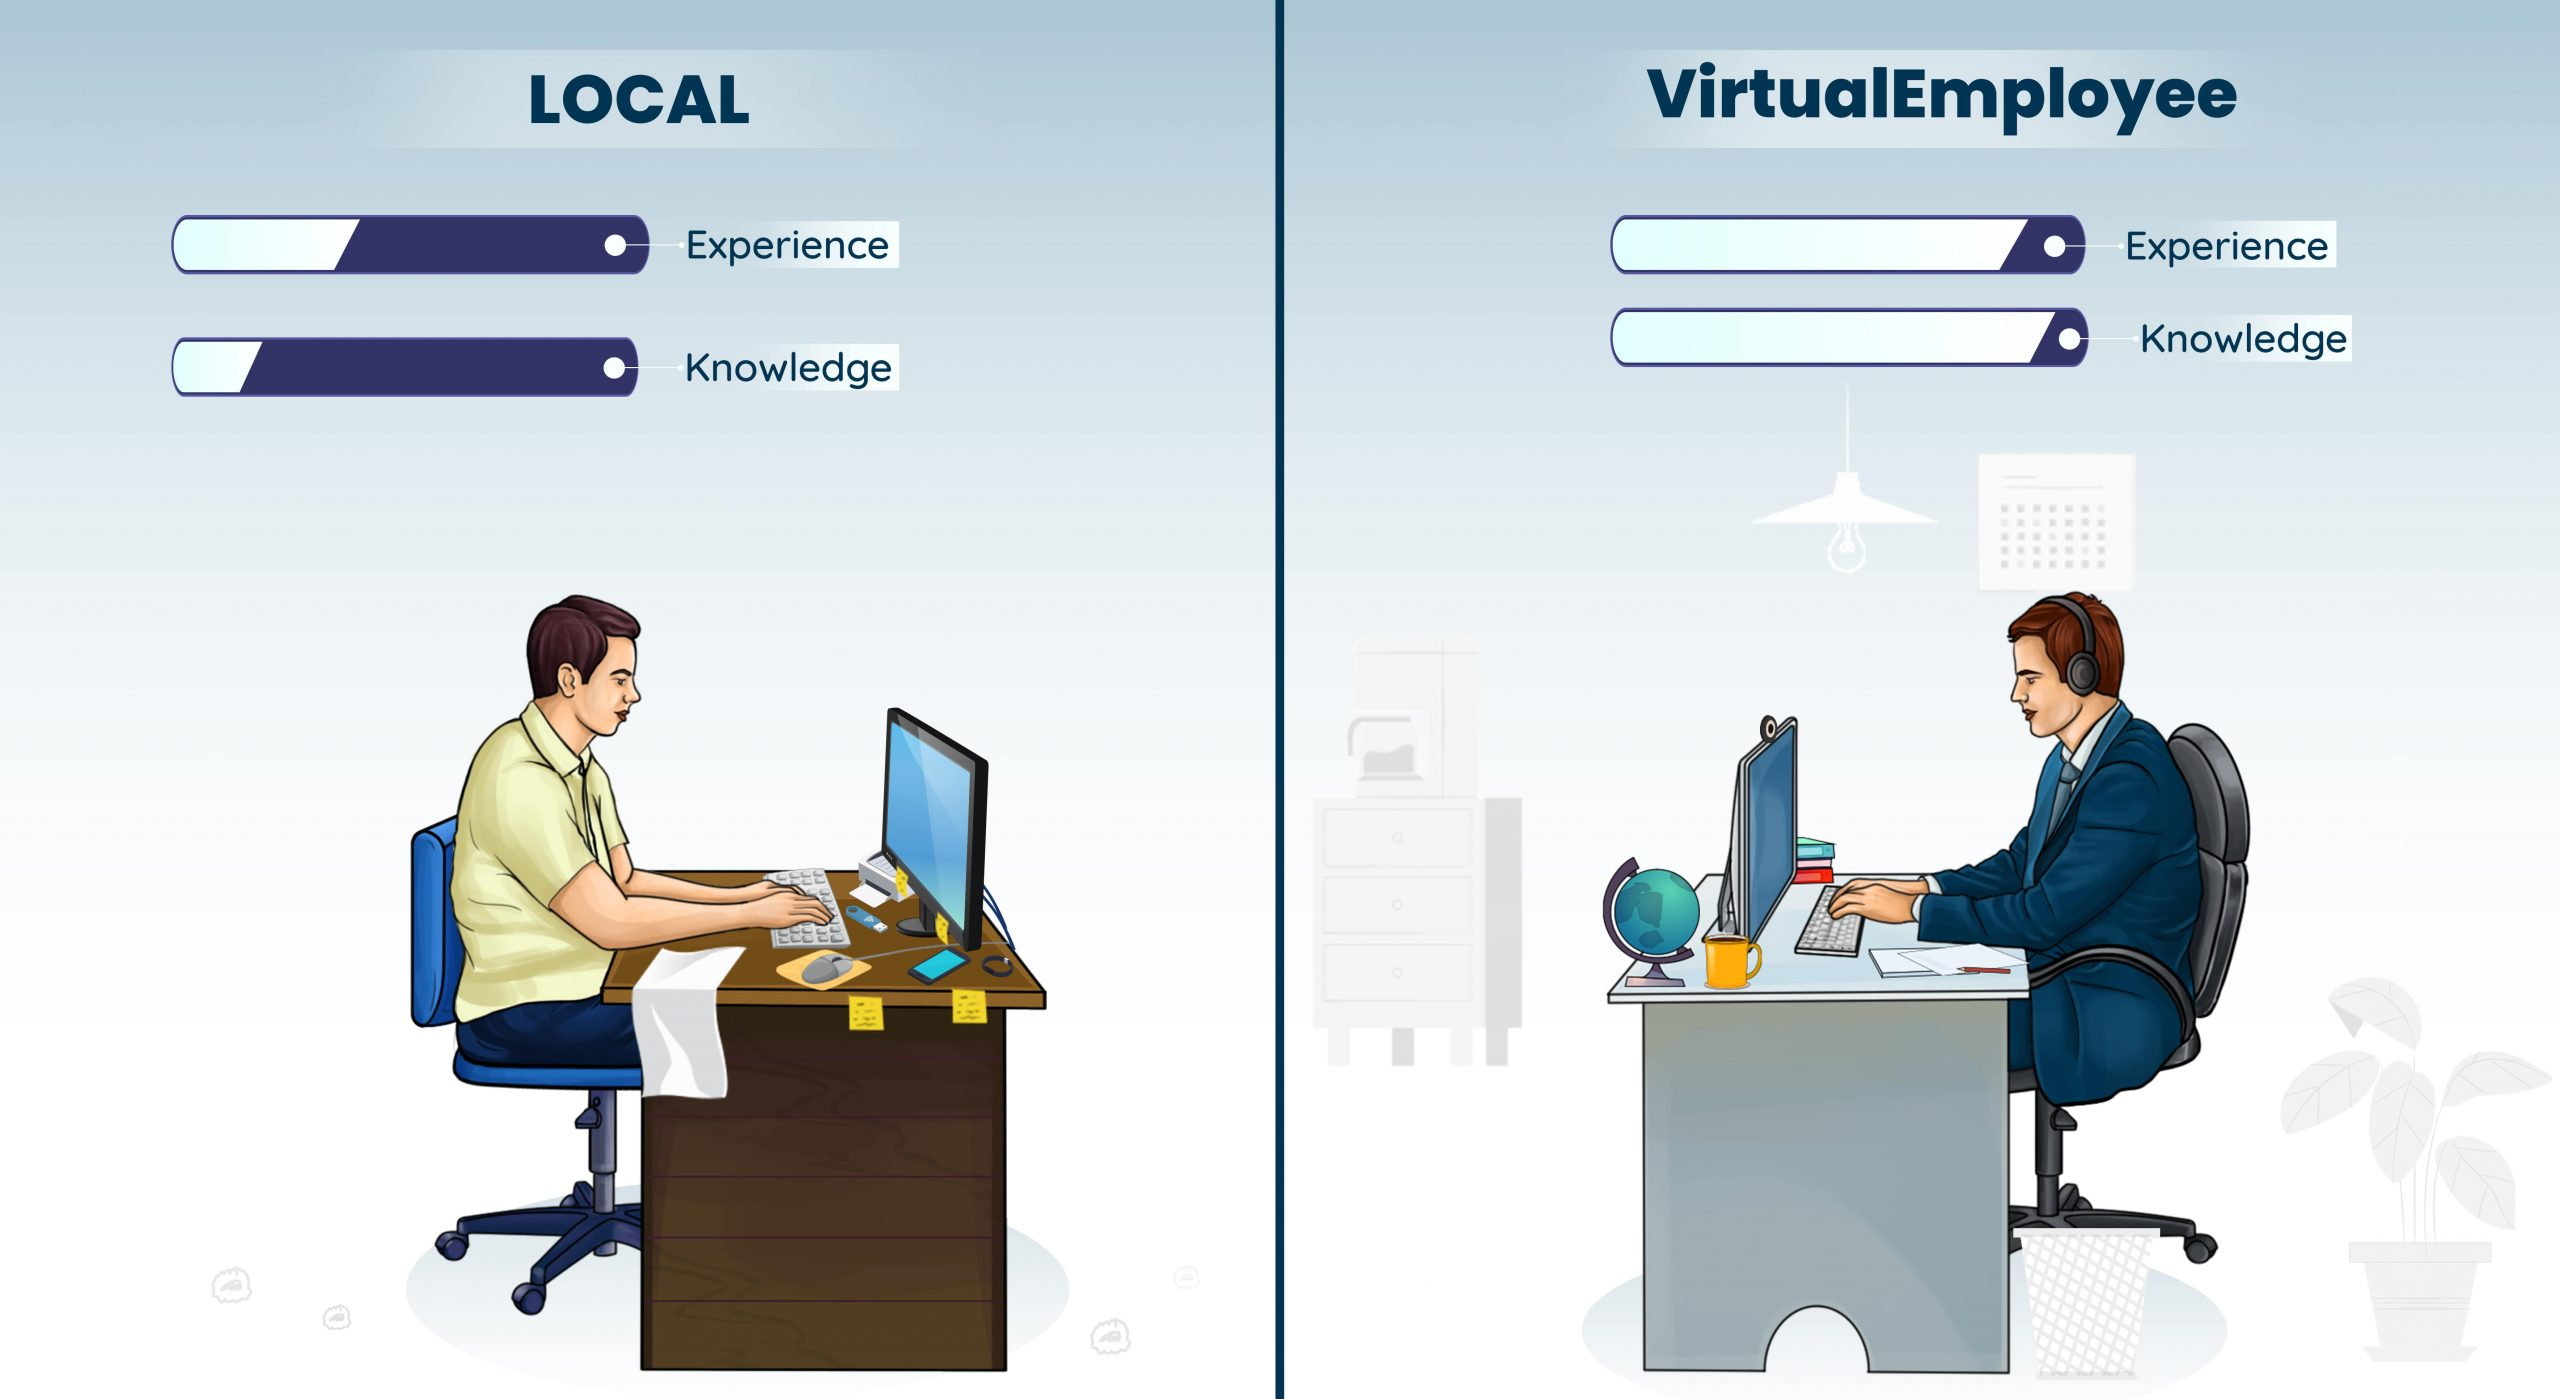 Local and Virtual Employee